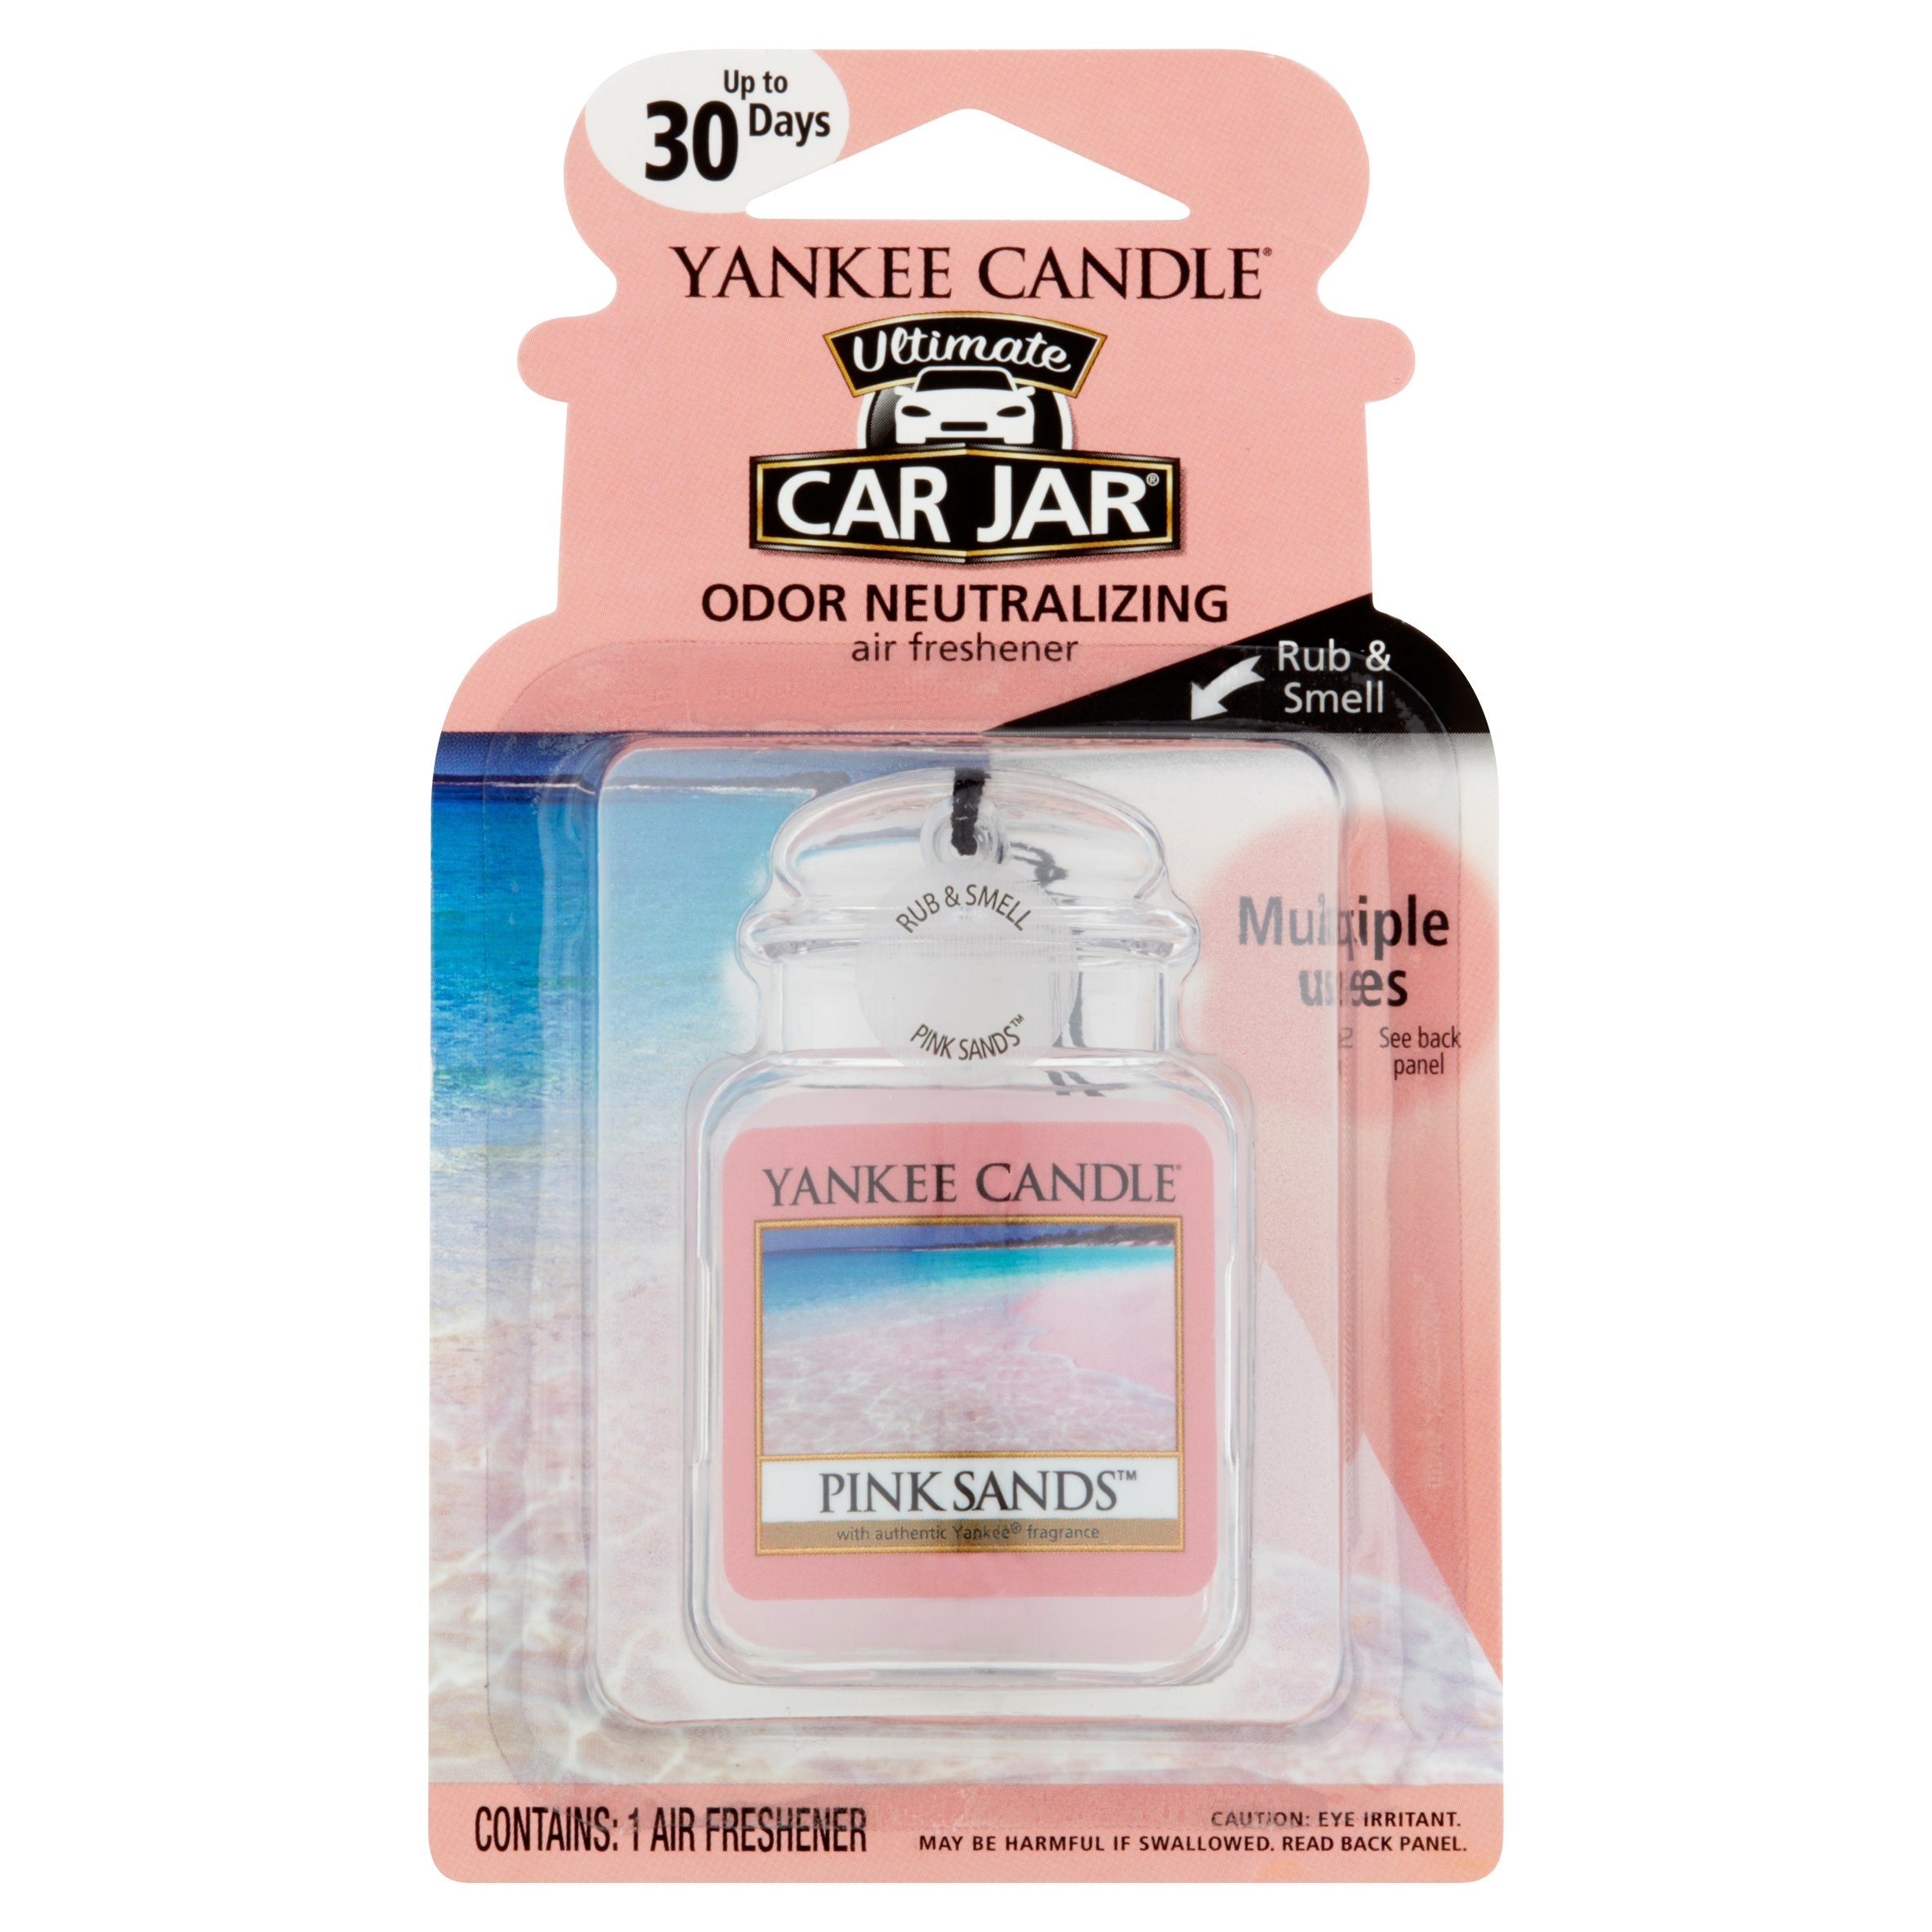 Yankee Candle Car Air Freshener, Pink Sands, 1 Count